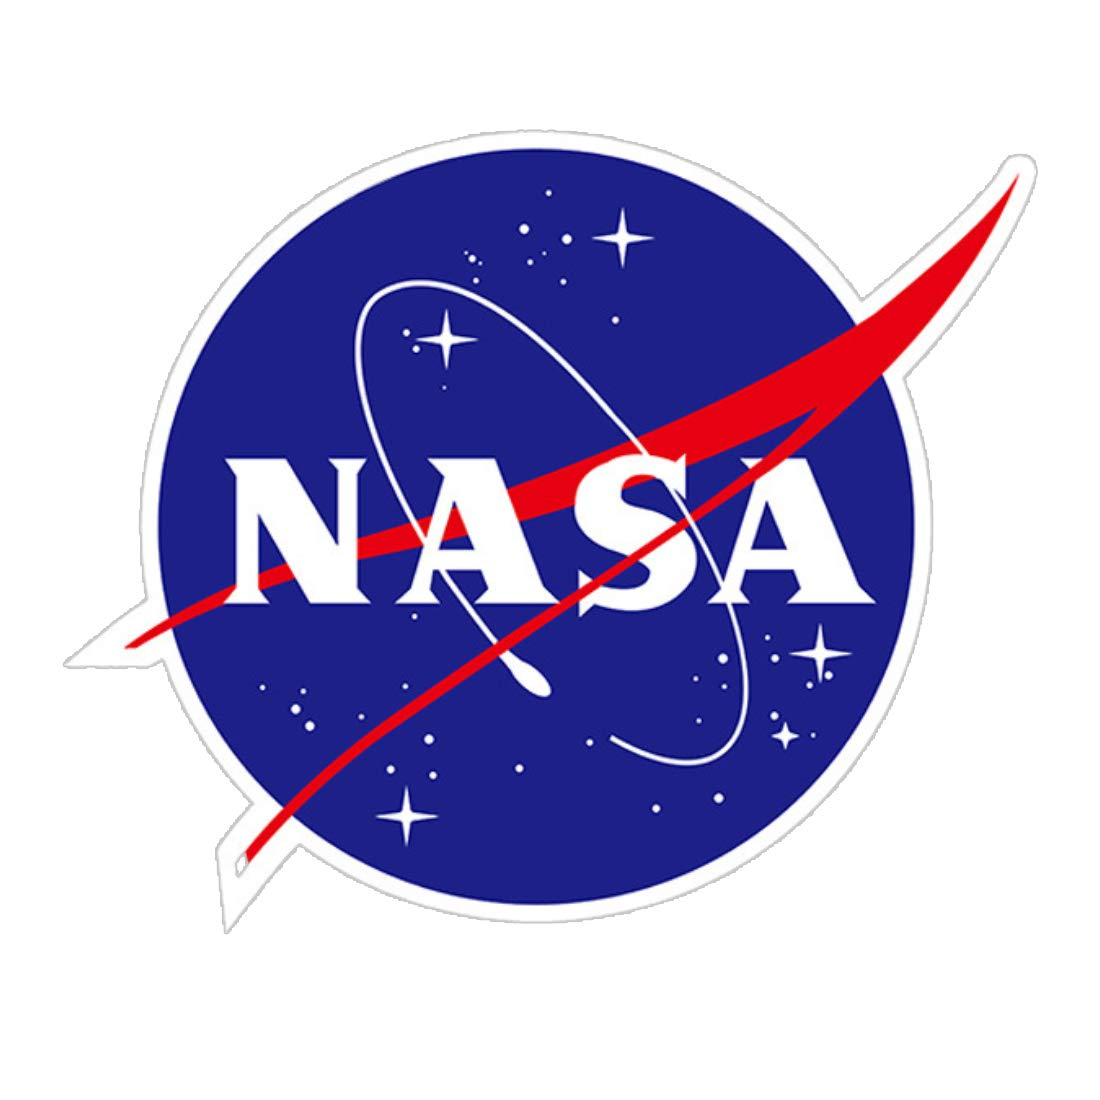 Car Waterproof Decal Sticker Writing Station NASA Stickers for Motorcycles 3.9 x 4.7 inch Riders